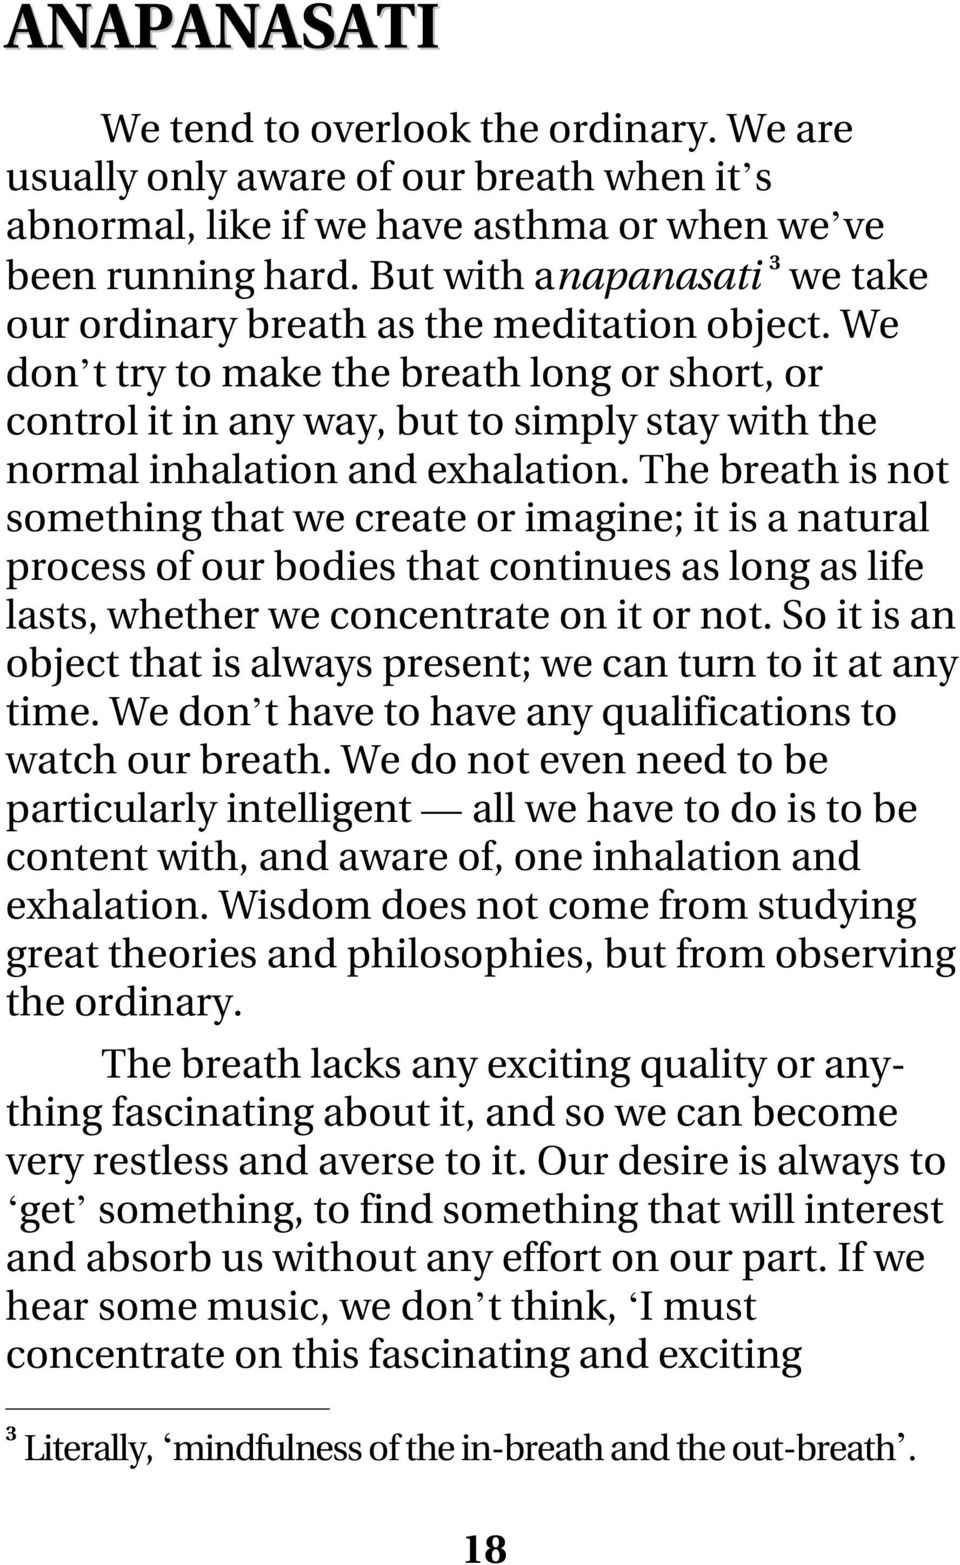 We don t try to make the breath long or short, or control it in any way, but to simply stay with the normal inhalation and exhalation.